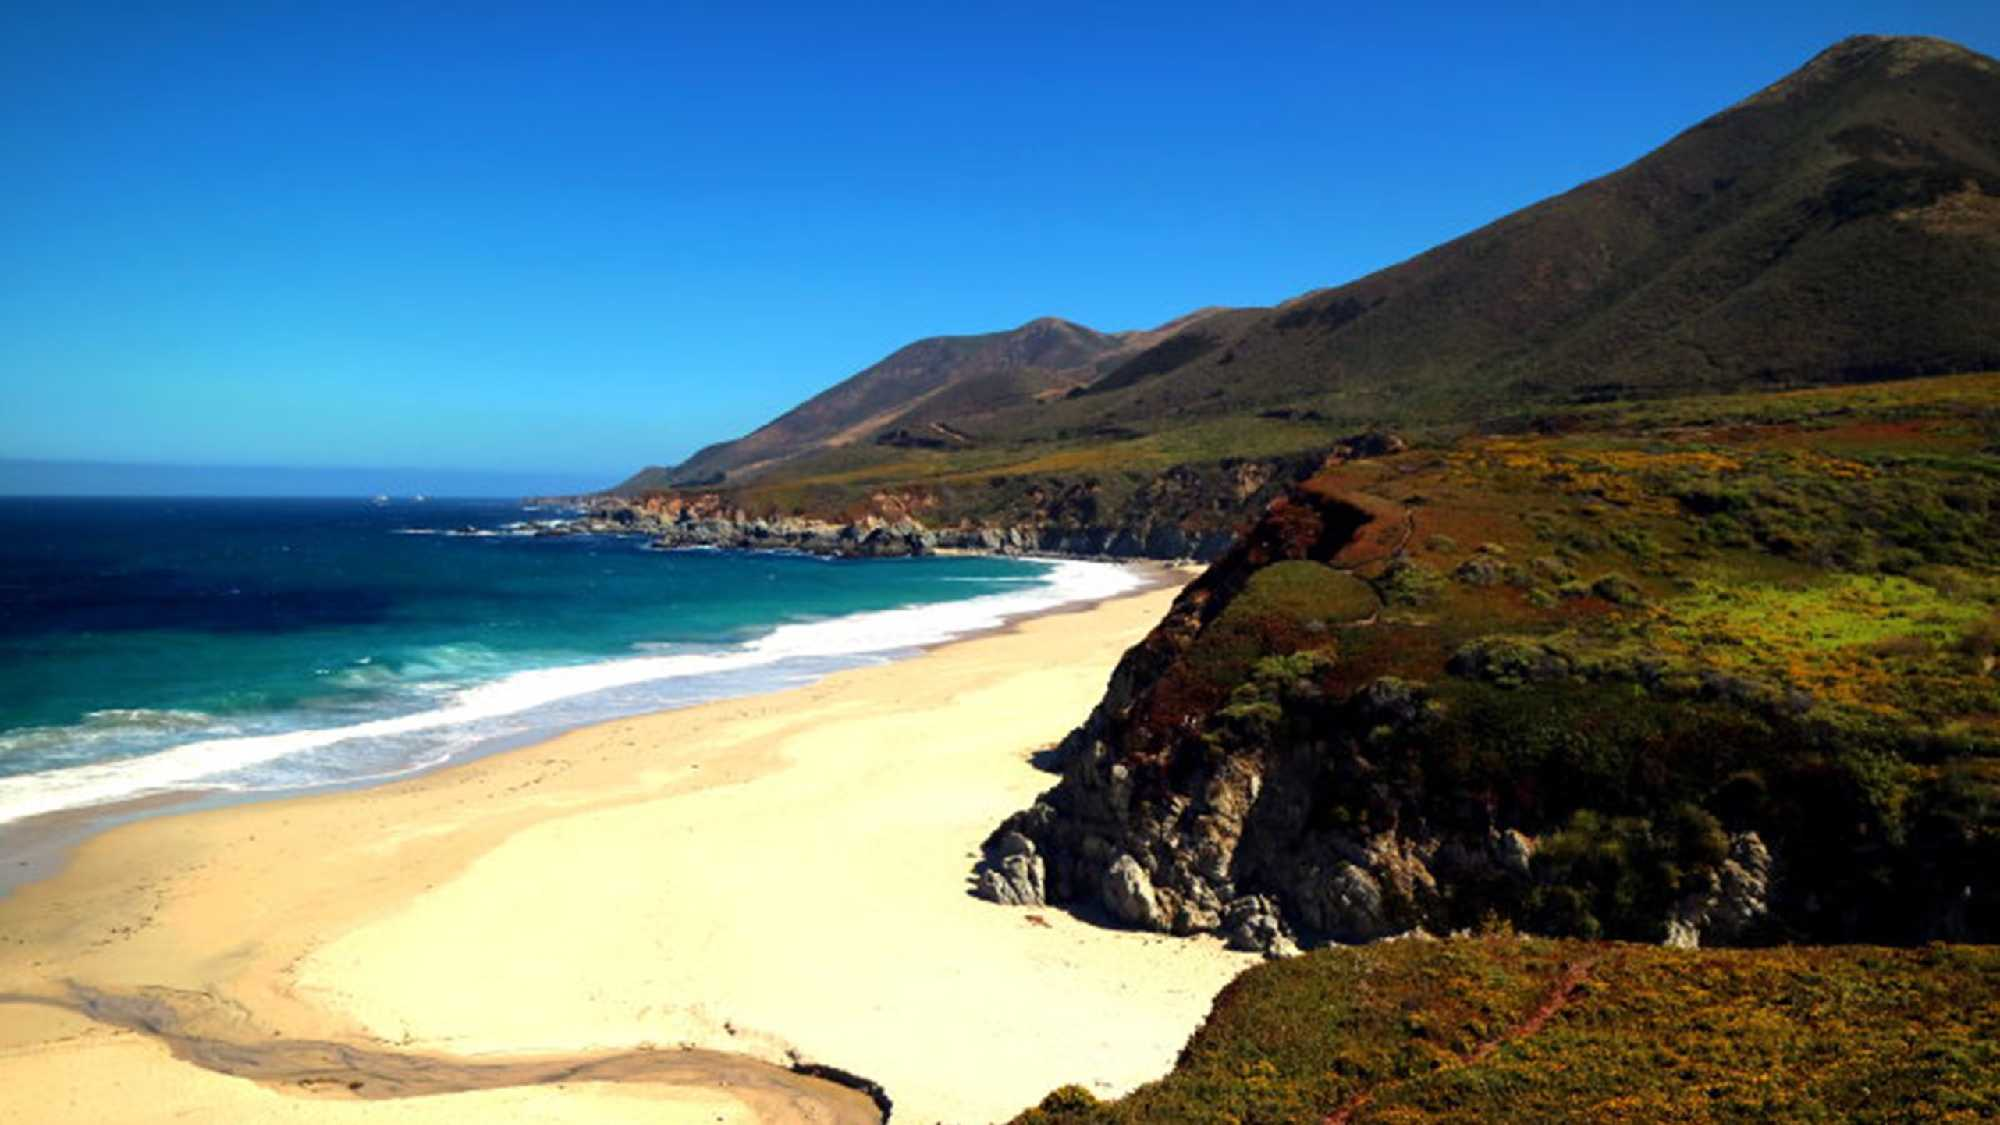 A photo shot of Garrapata State Beach on July 9 shows a picturesque scene before the wildfire ignited July 22.